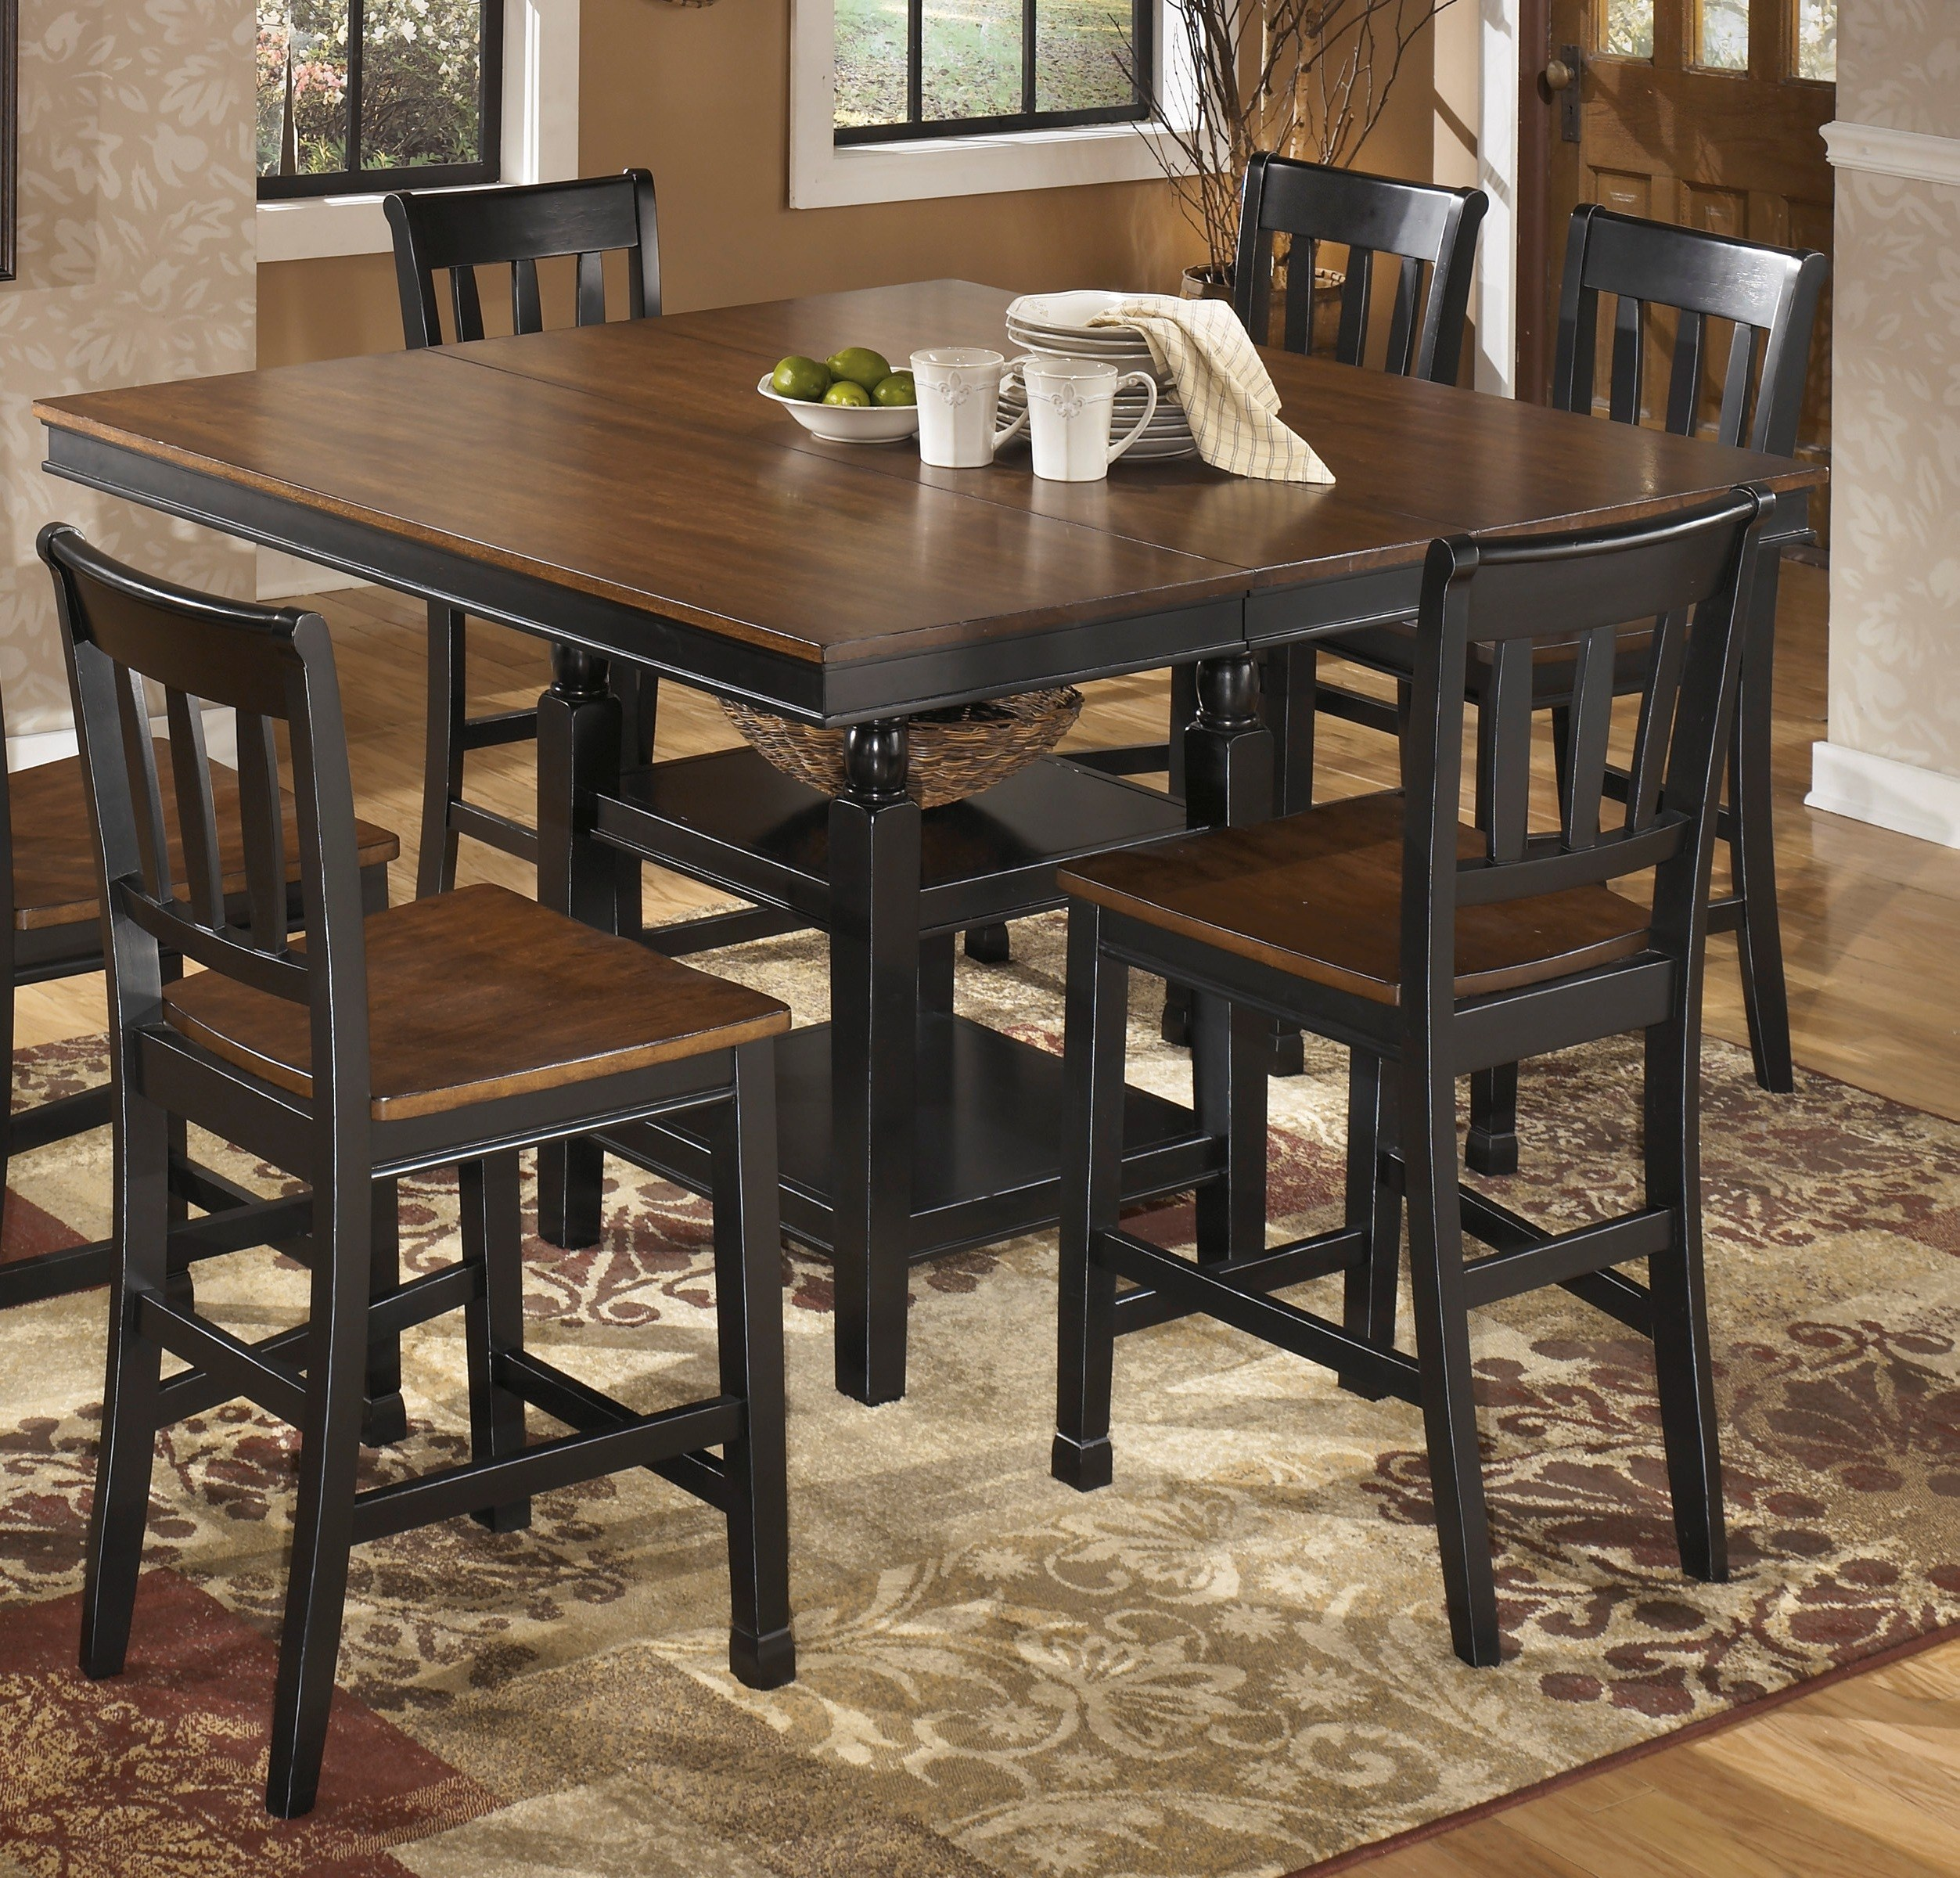 Attractive Signature Design By Ashley Owingsville Square Counter Height Table   D580 32